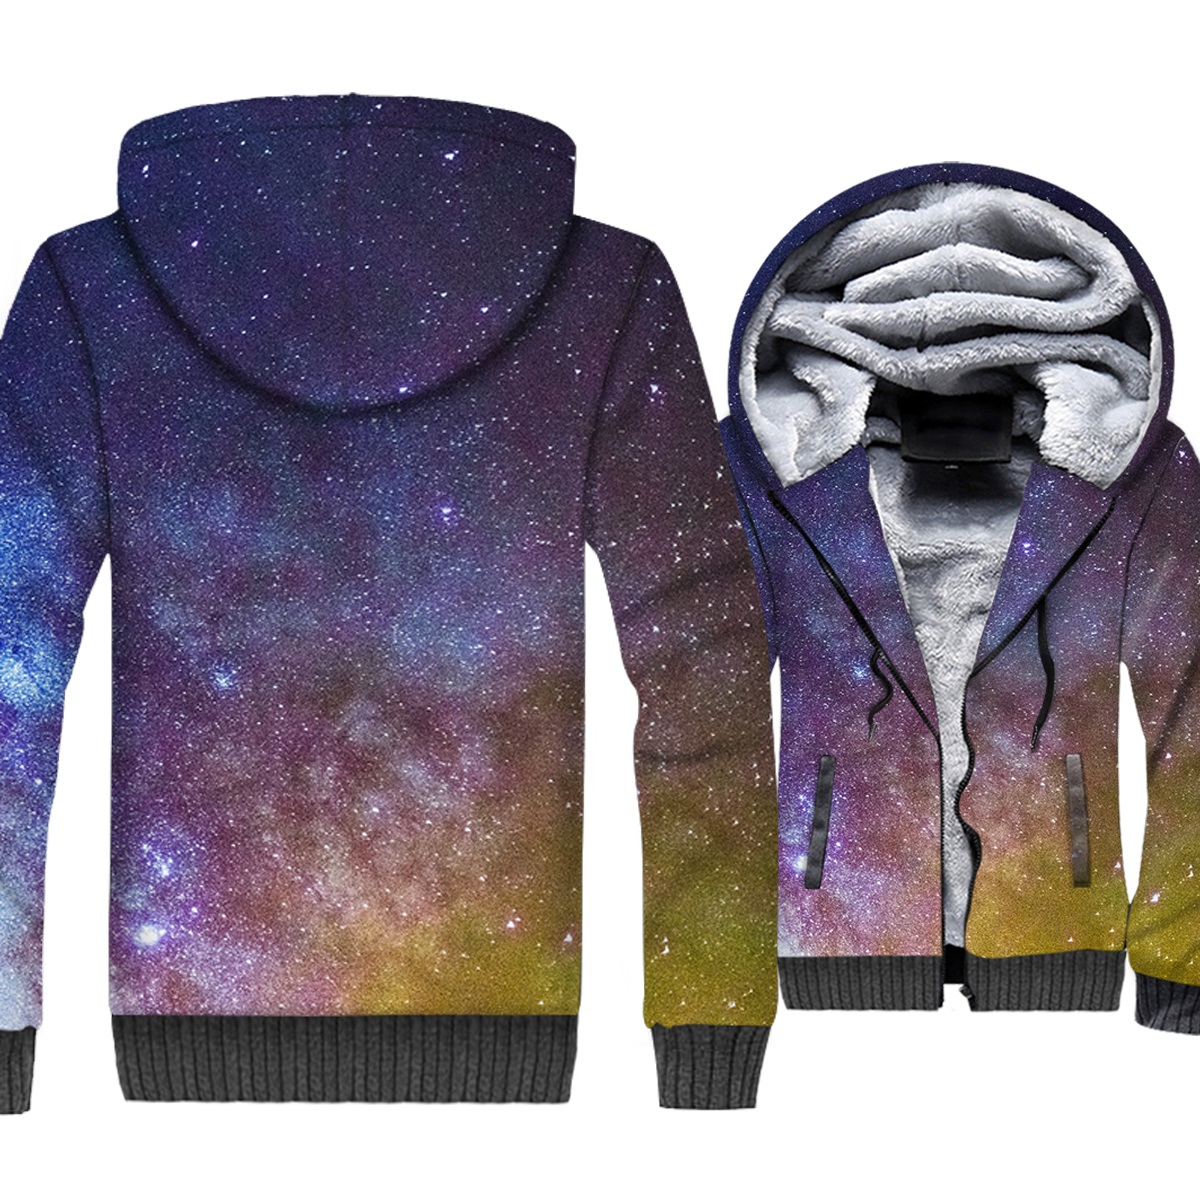 Space Galaxy 3D Print Hoodie Men Colorful Nebula Hooded Sweatshirt Harajuku Coat Winter Thick Fleece Warm Stars Nebula Jacket